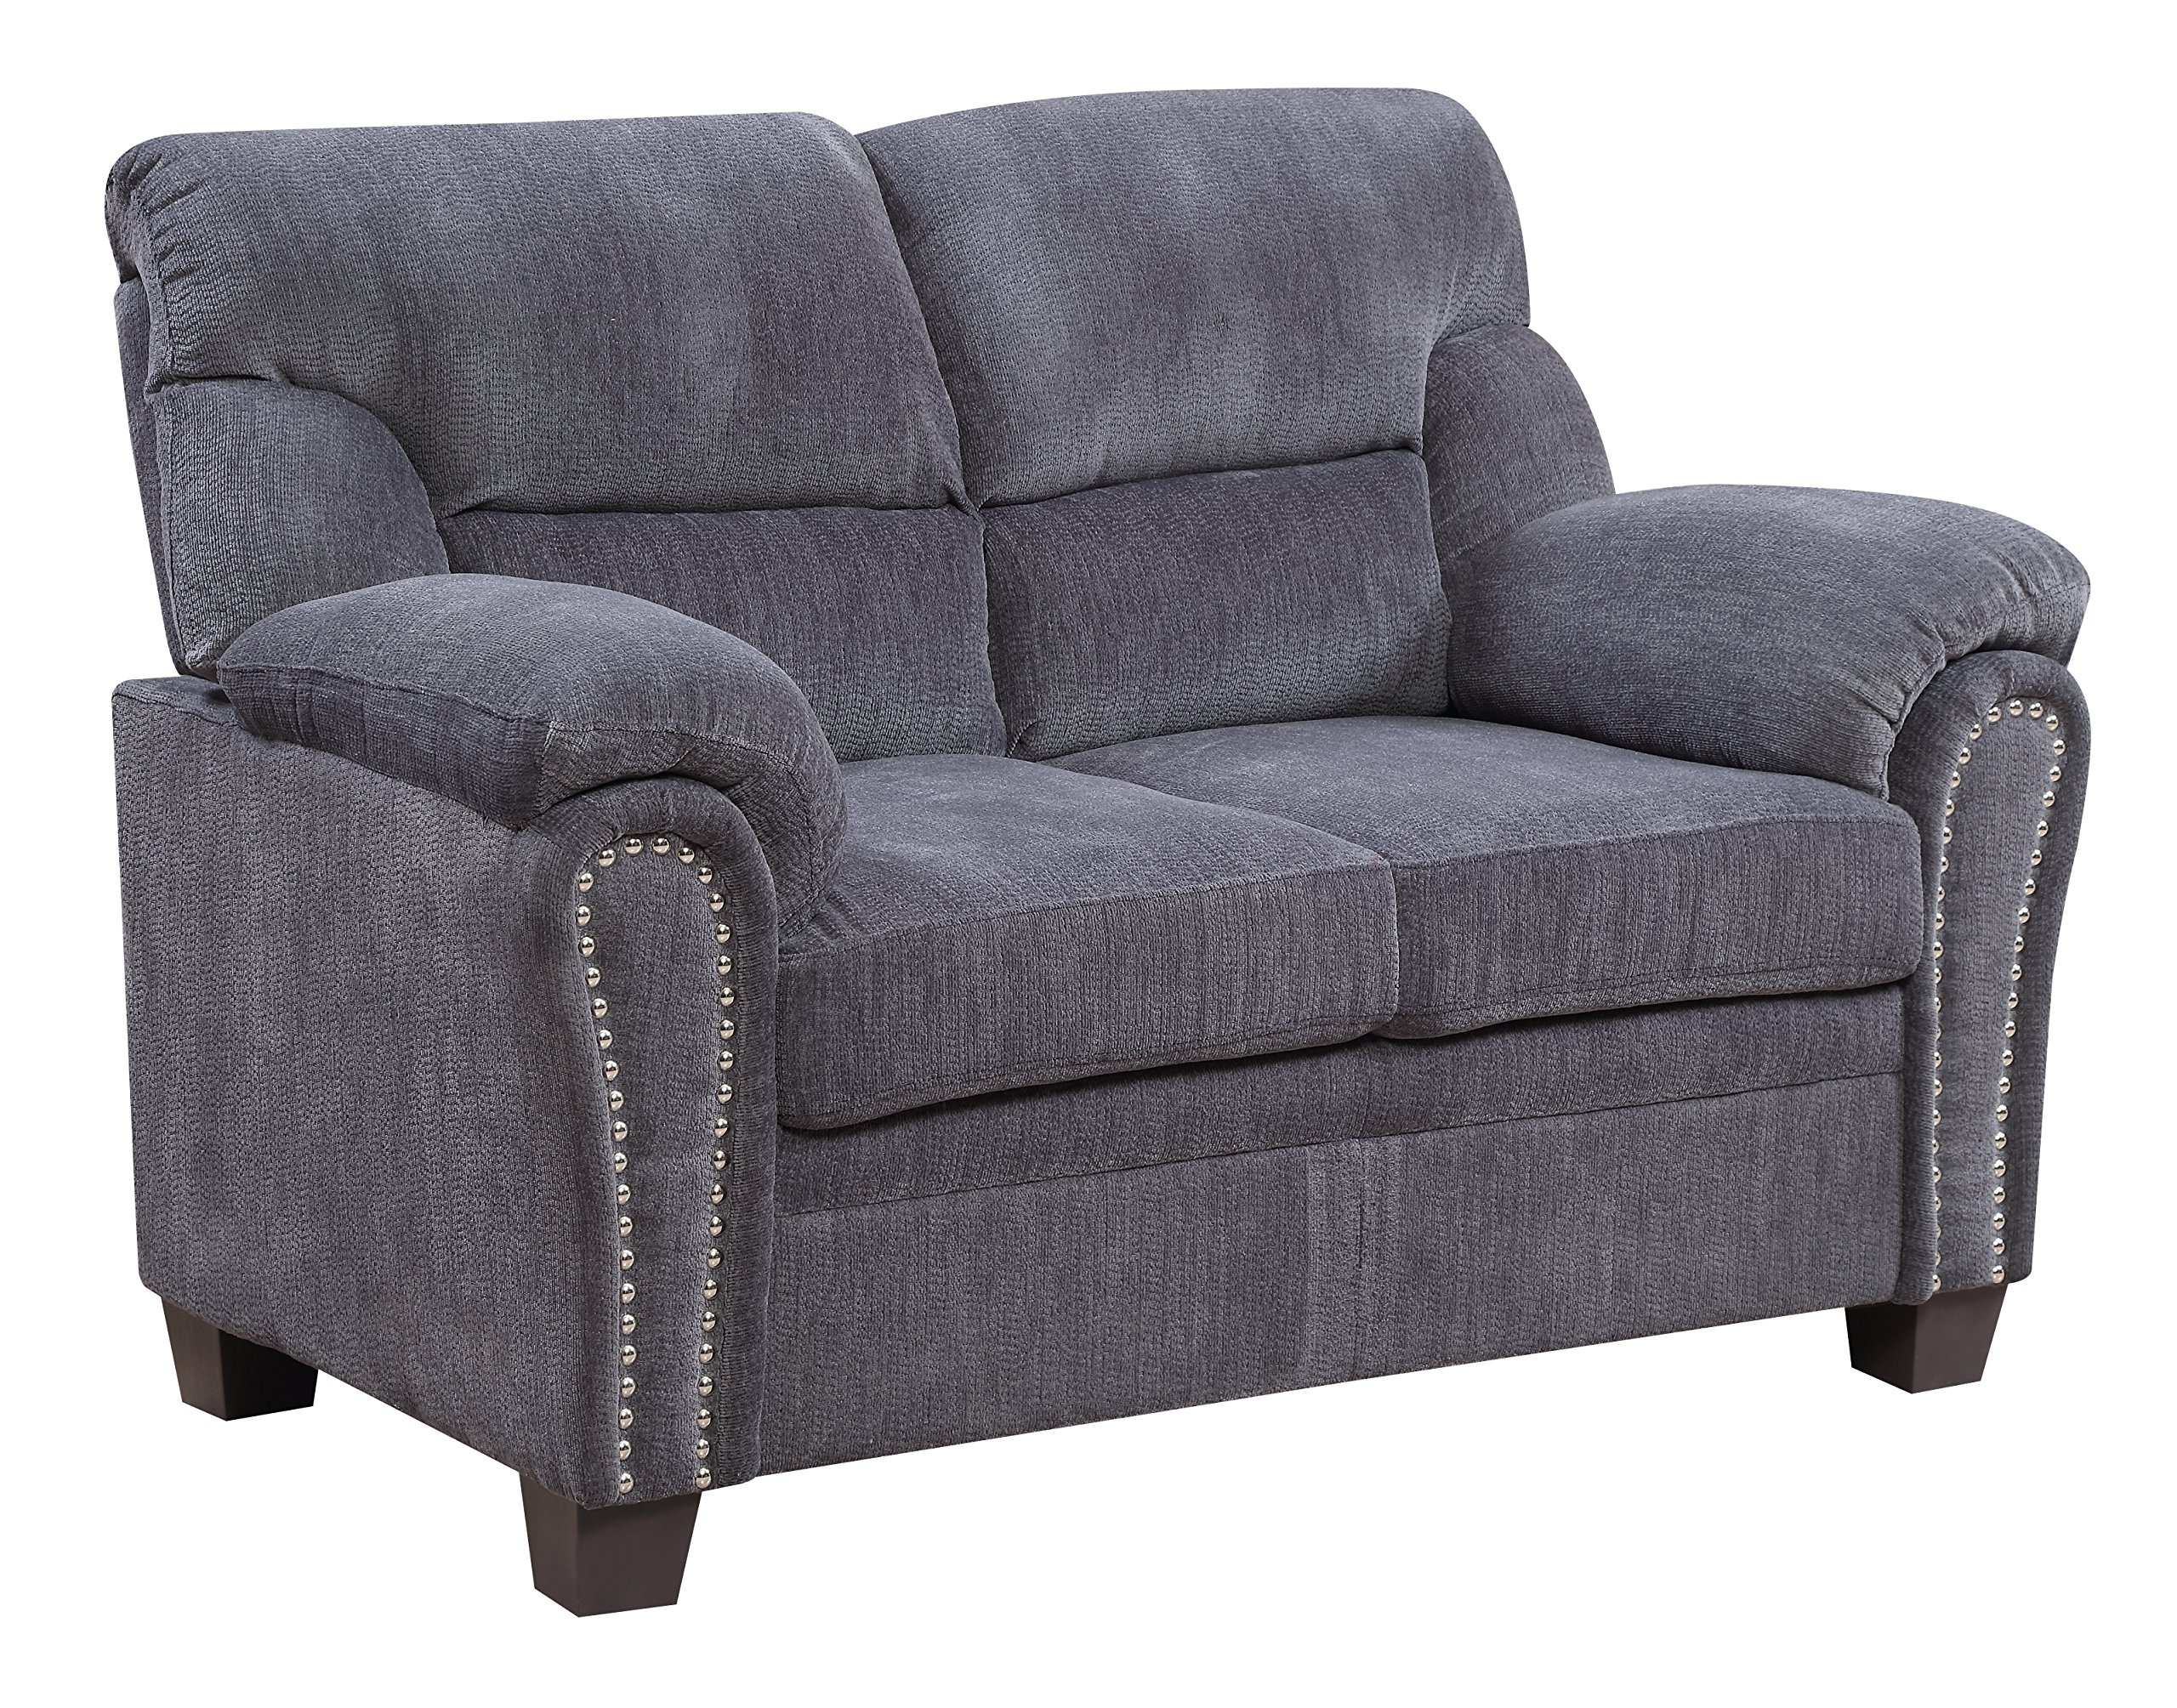 Furniture World Jefferson Love Seat, Gray Chenille Fabric